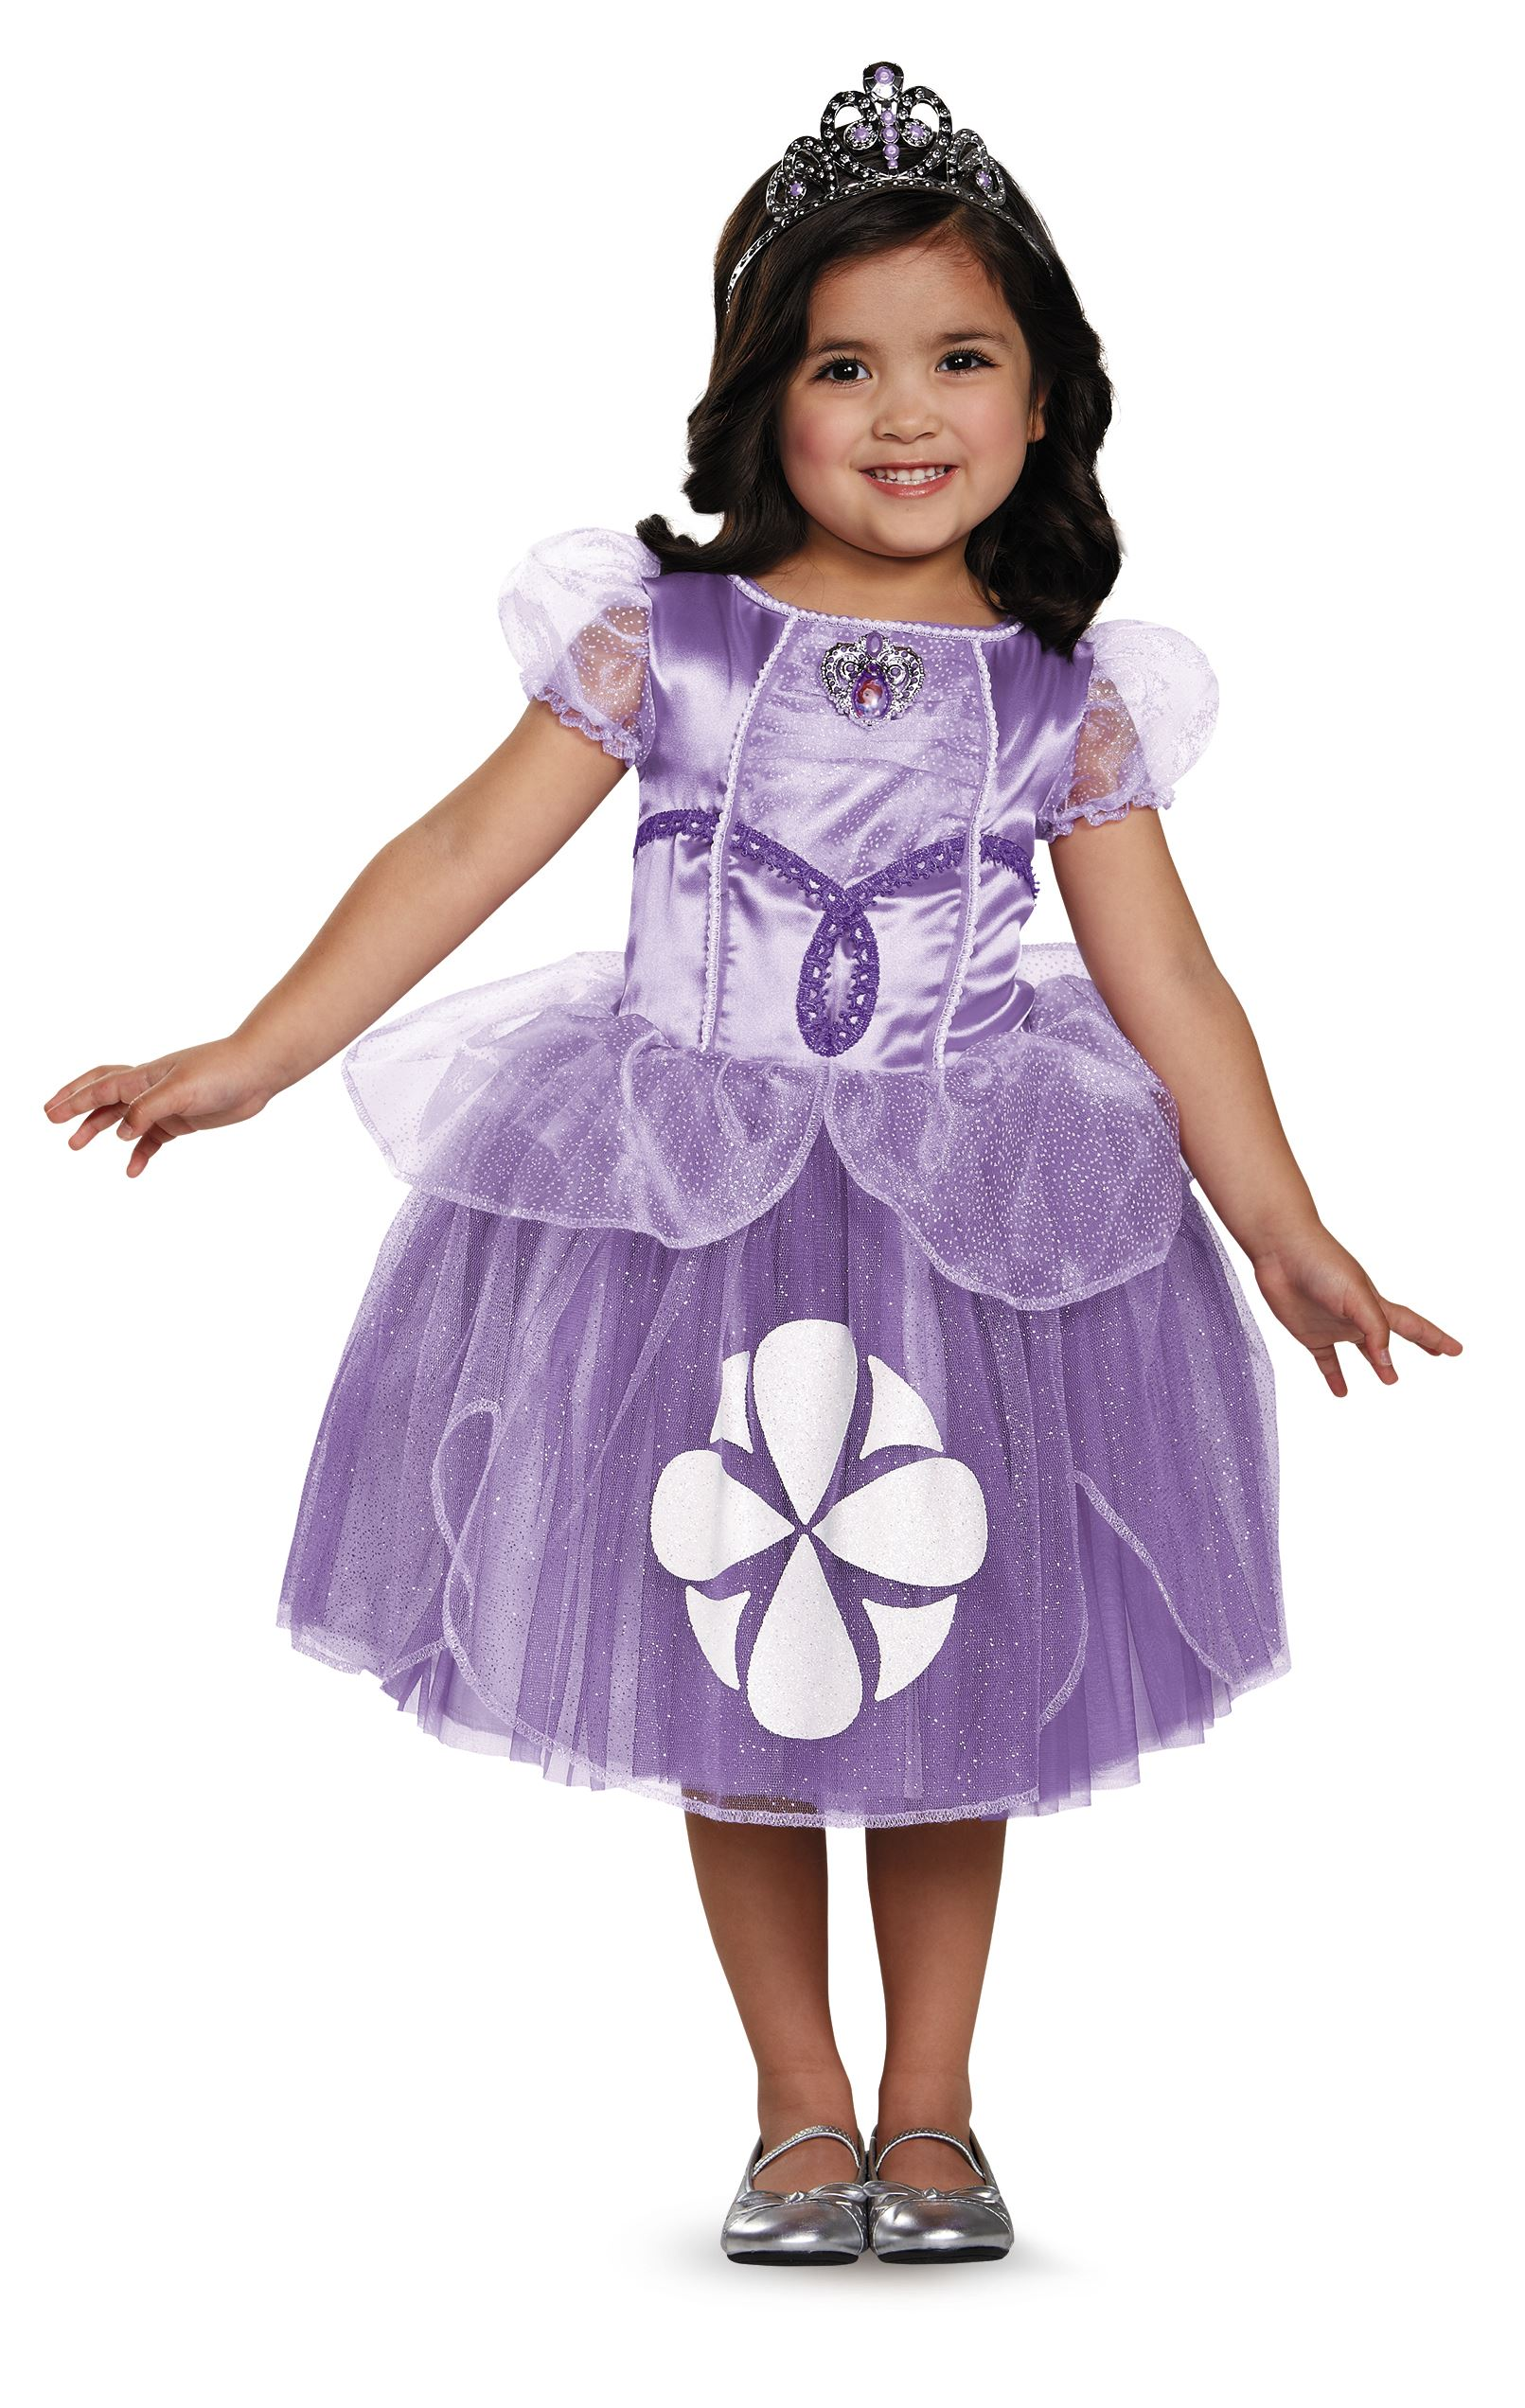 Kids Sofia Disney Princess Girls Costume  sc 1 st  The Costume Land & Kids Sofia Disney Princess Girls Costume | $35.99 | The Costume Land